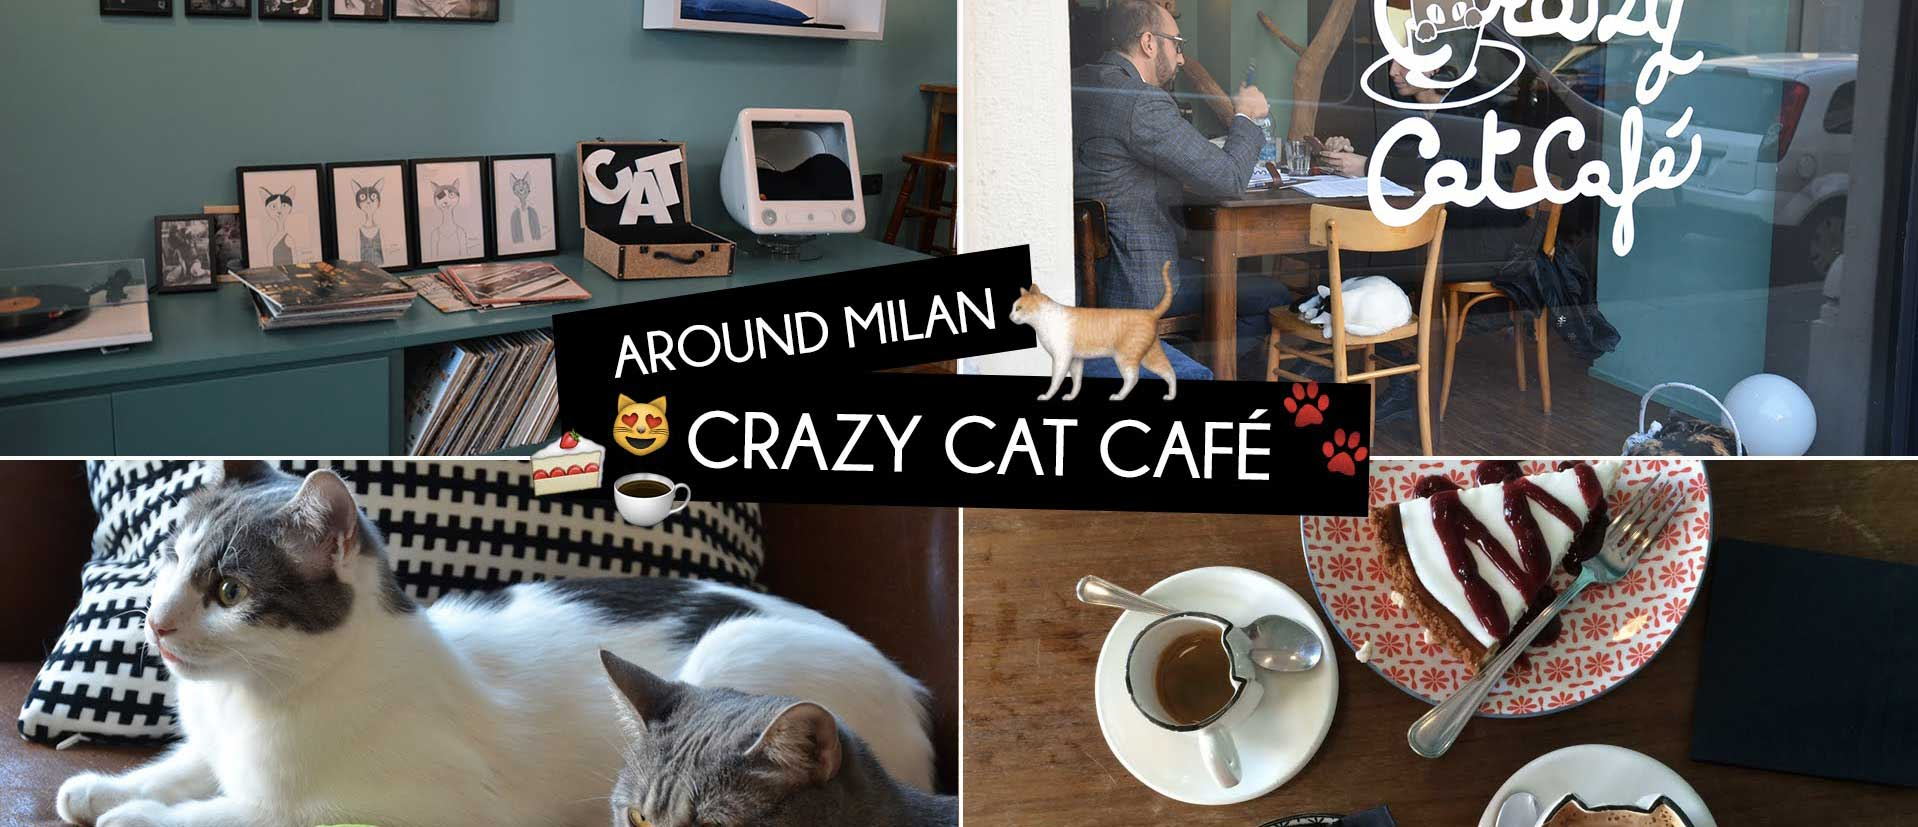 An unusual experience: visit the Crazy Cat Cafe near our hotel in Milan!